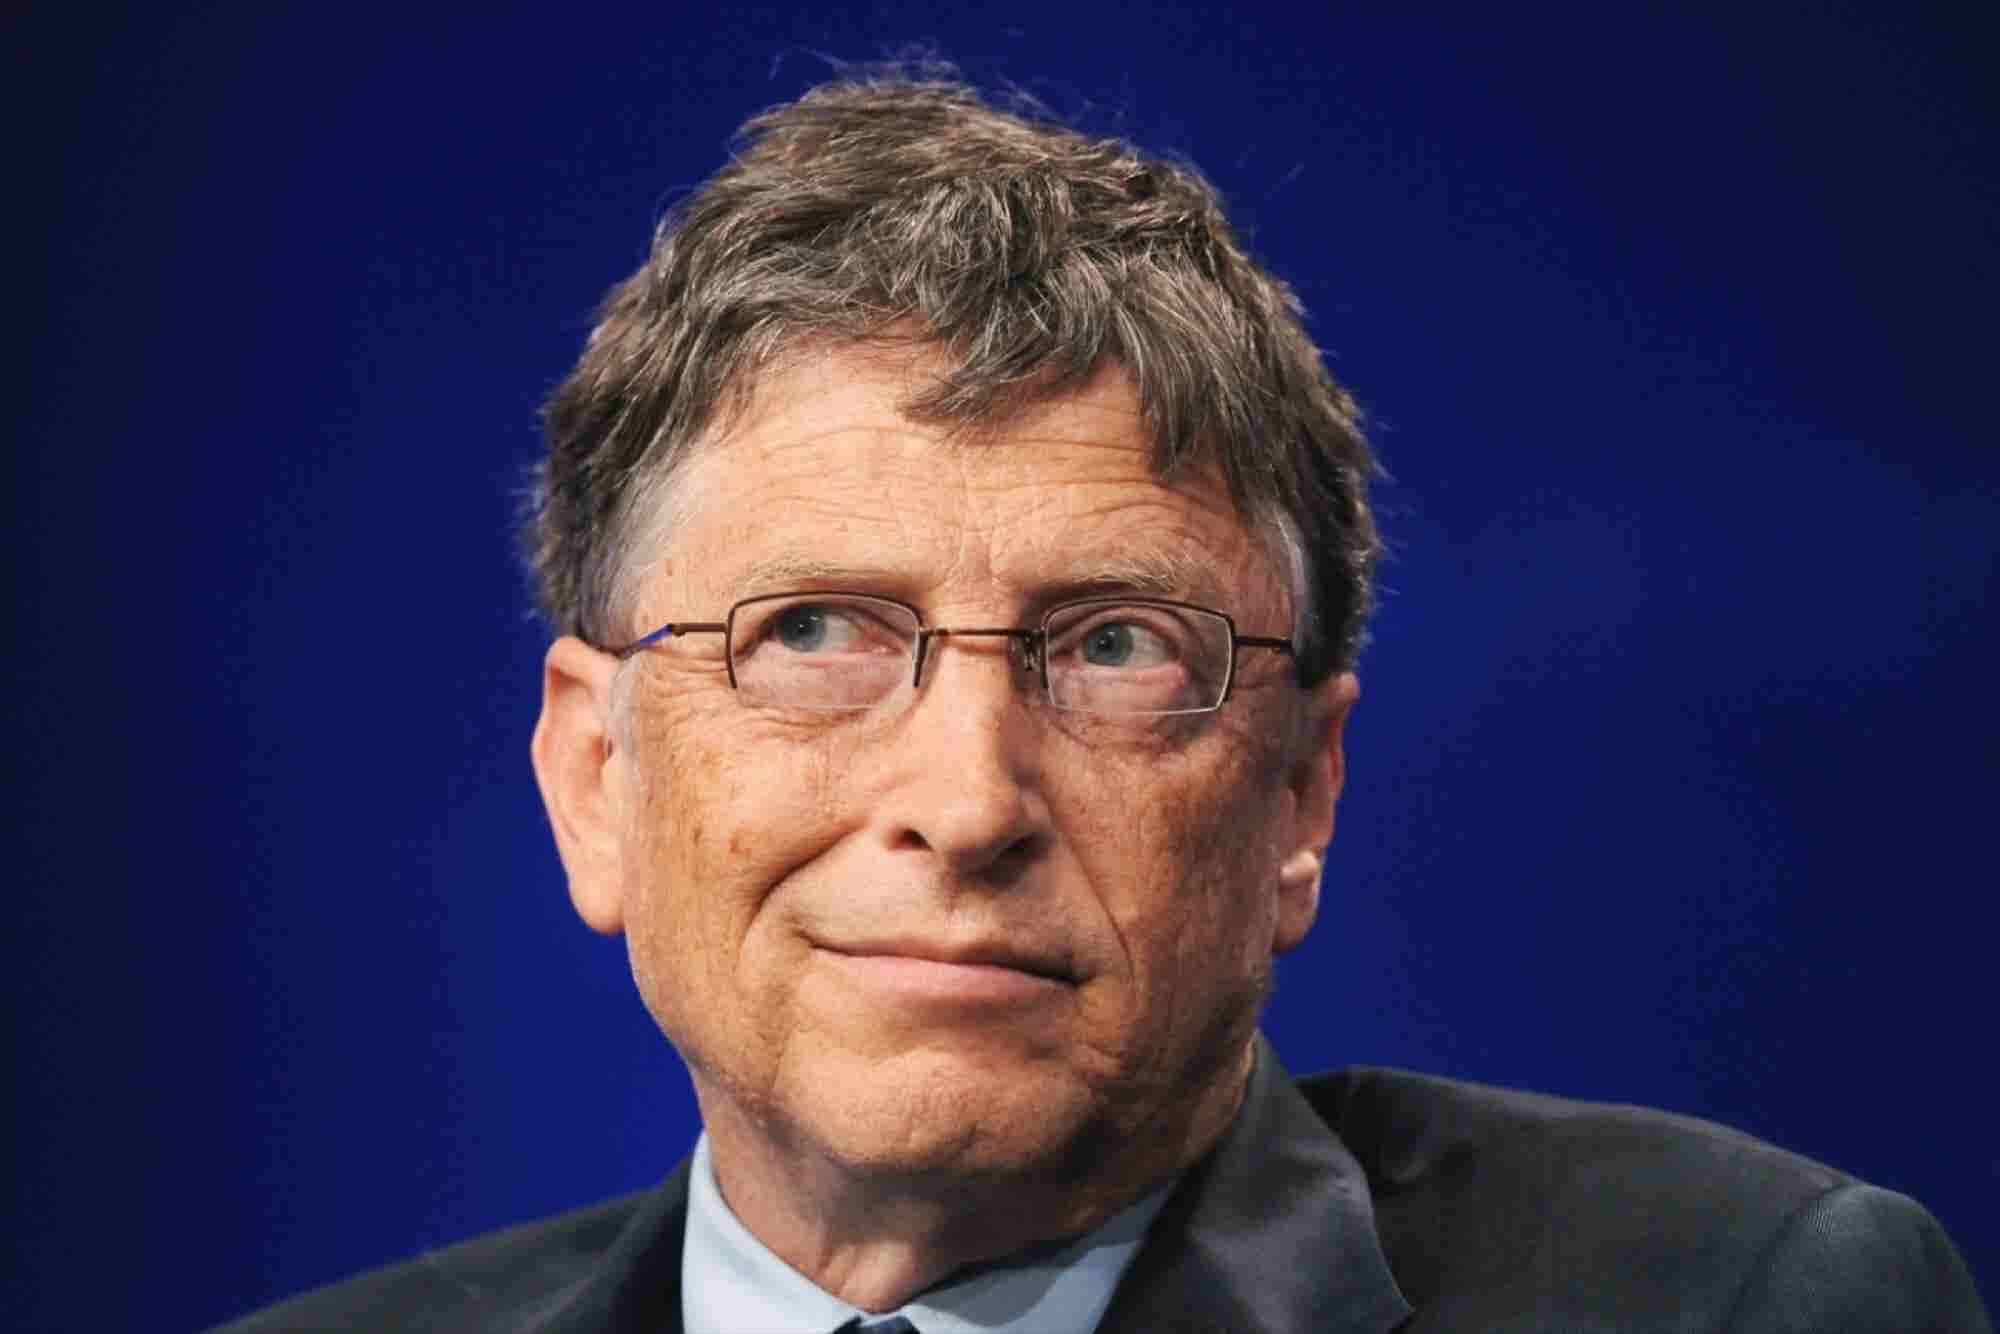 Bill Gates Says Apple Should Cooperate With the FBI